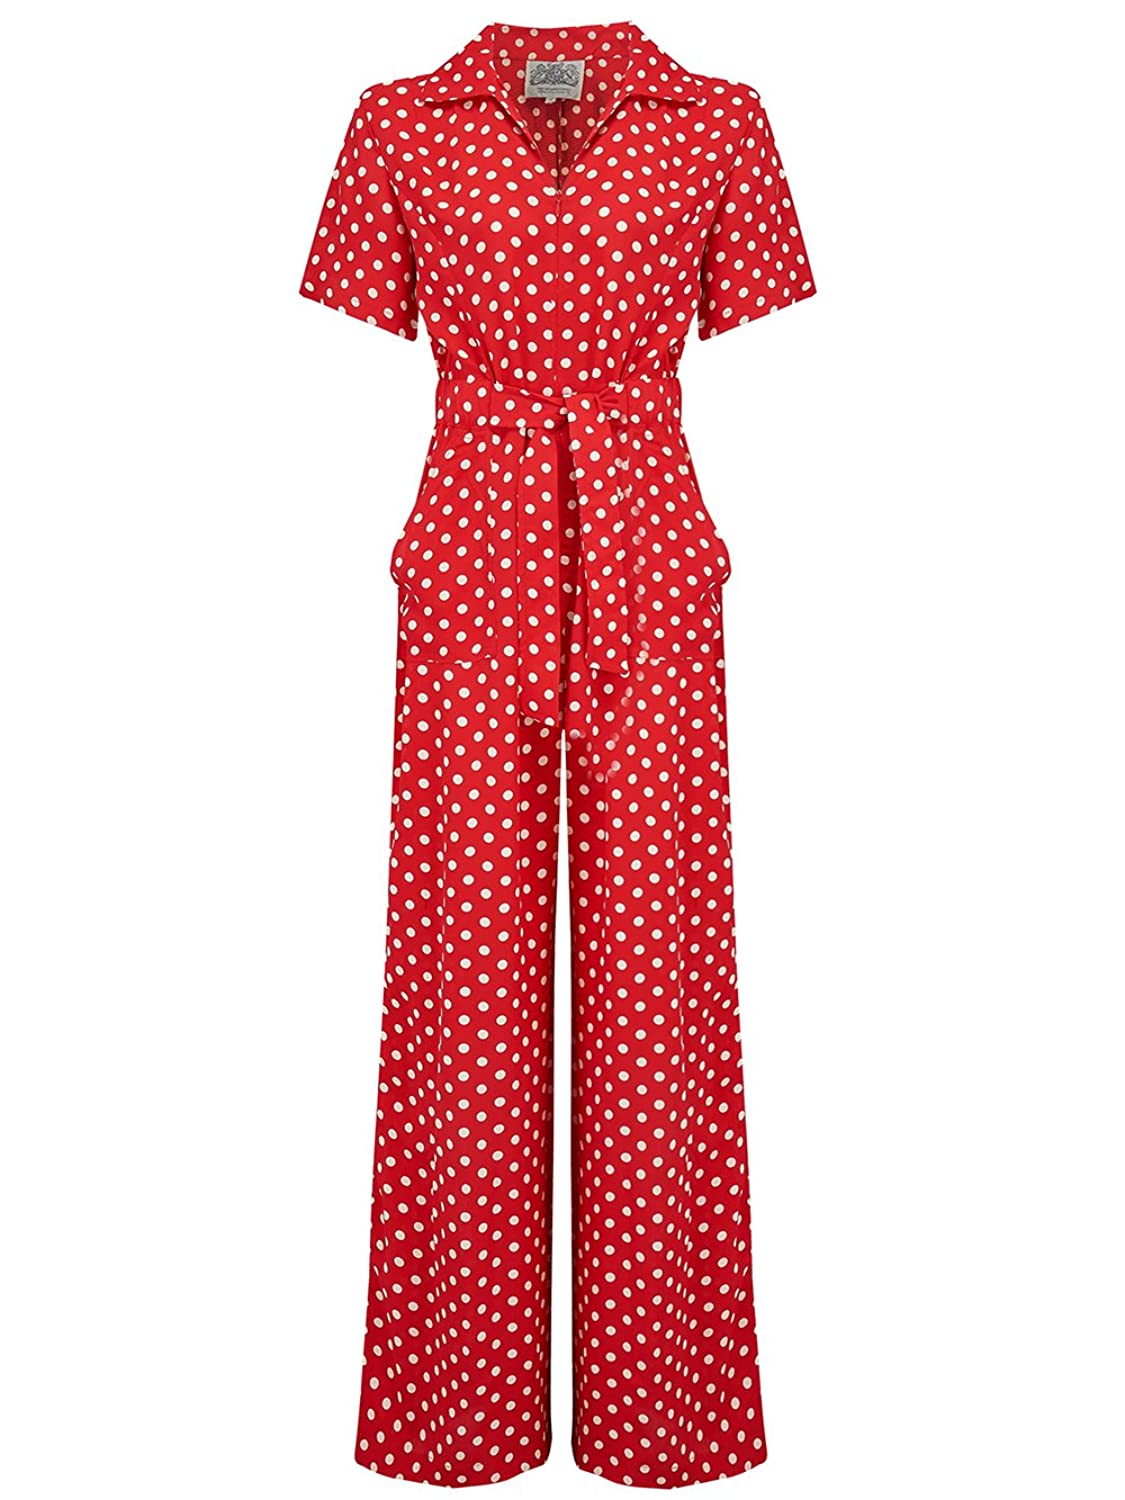 1940s Dresses and Clothing UK | 40s Shoes UK 1940s Vintage Inspired Lauren jumpsuit in Red Spot by The Seamstress of Bloomsbury �89.00 AT vintagedancer.com